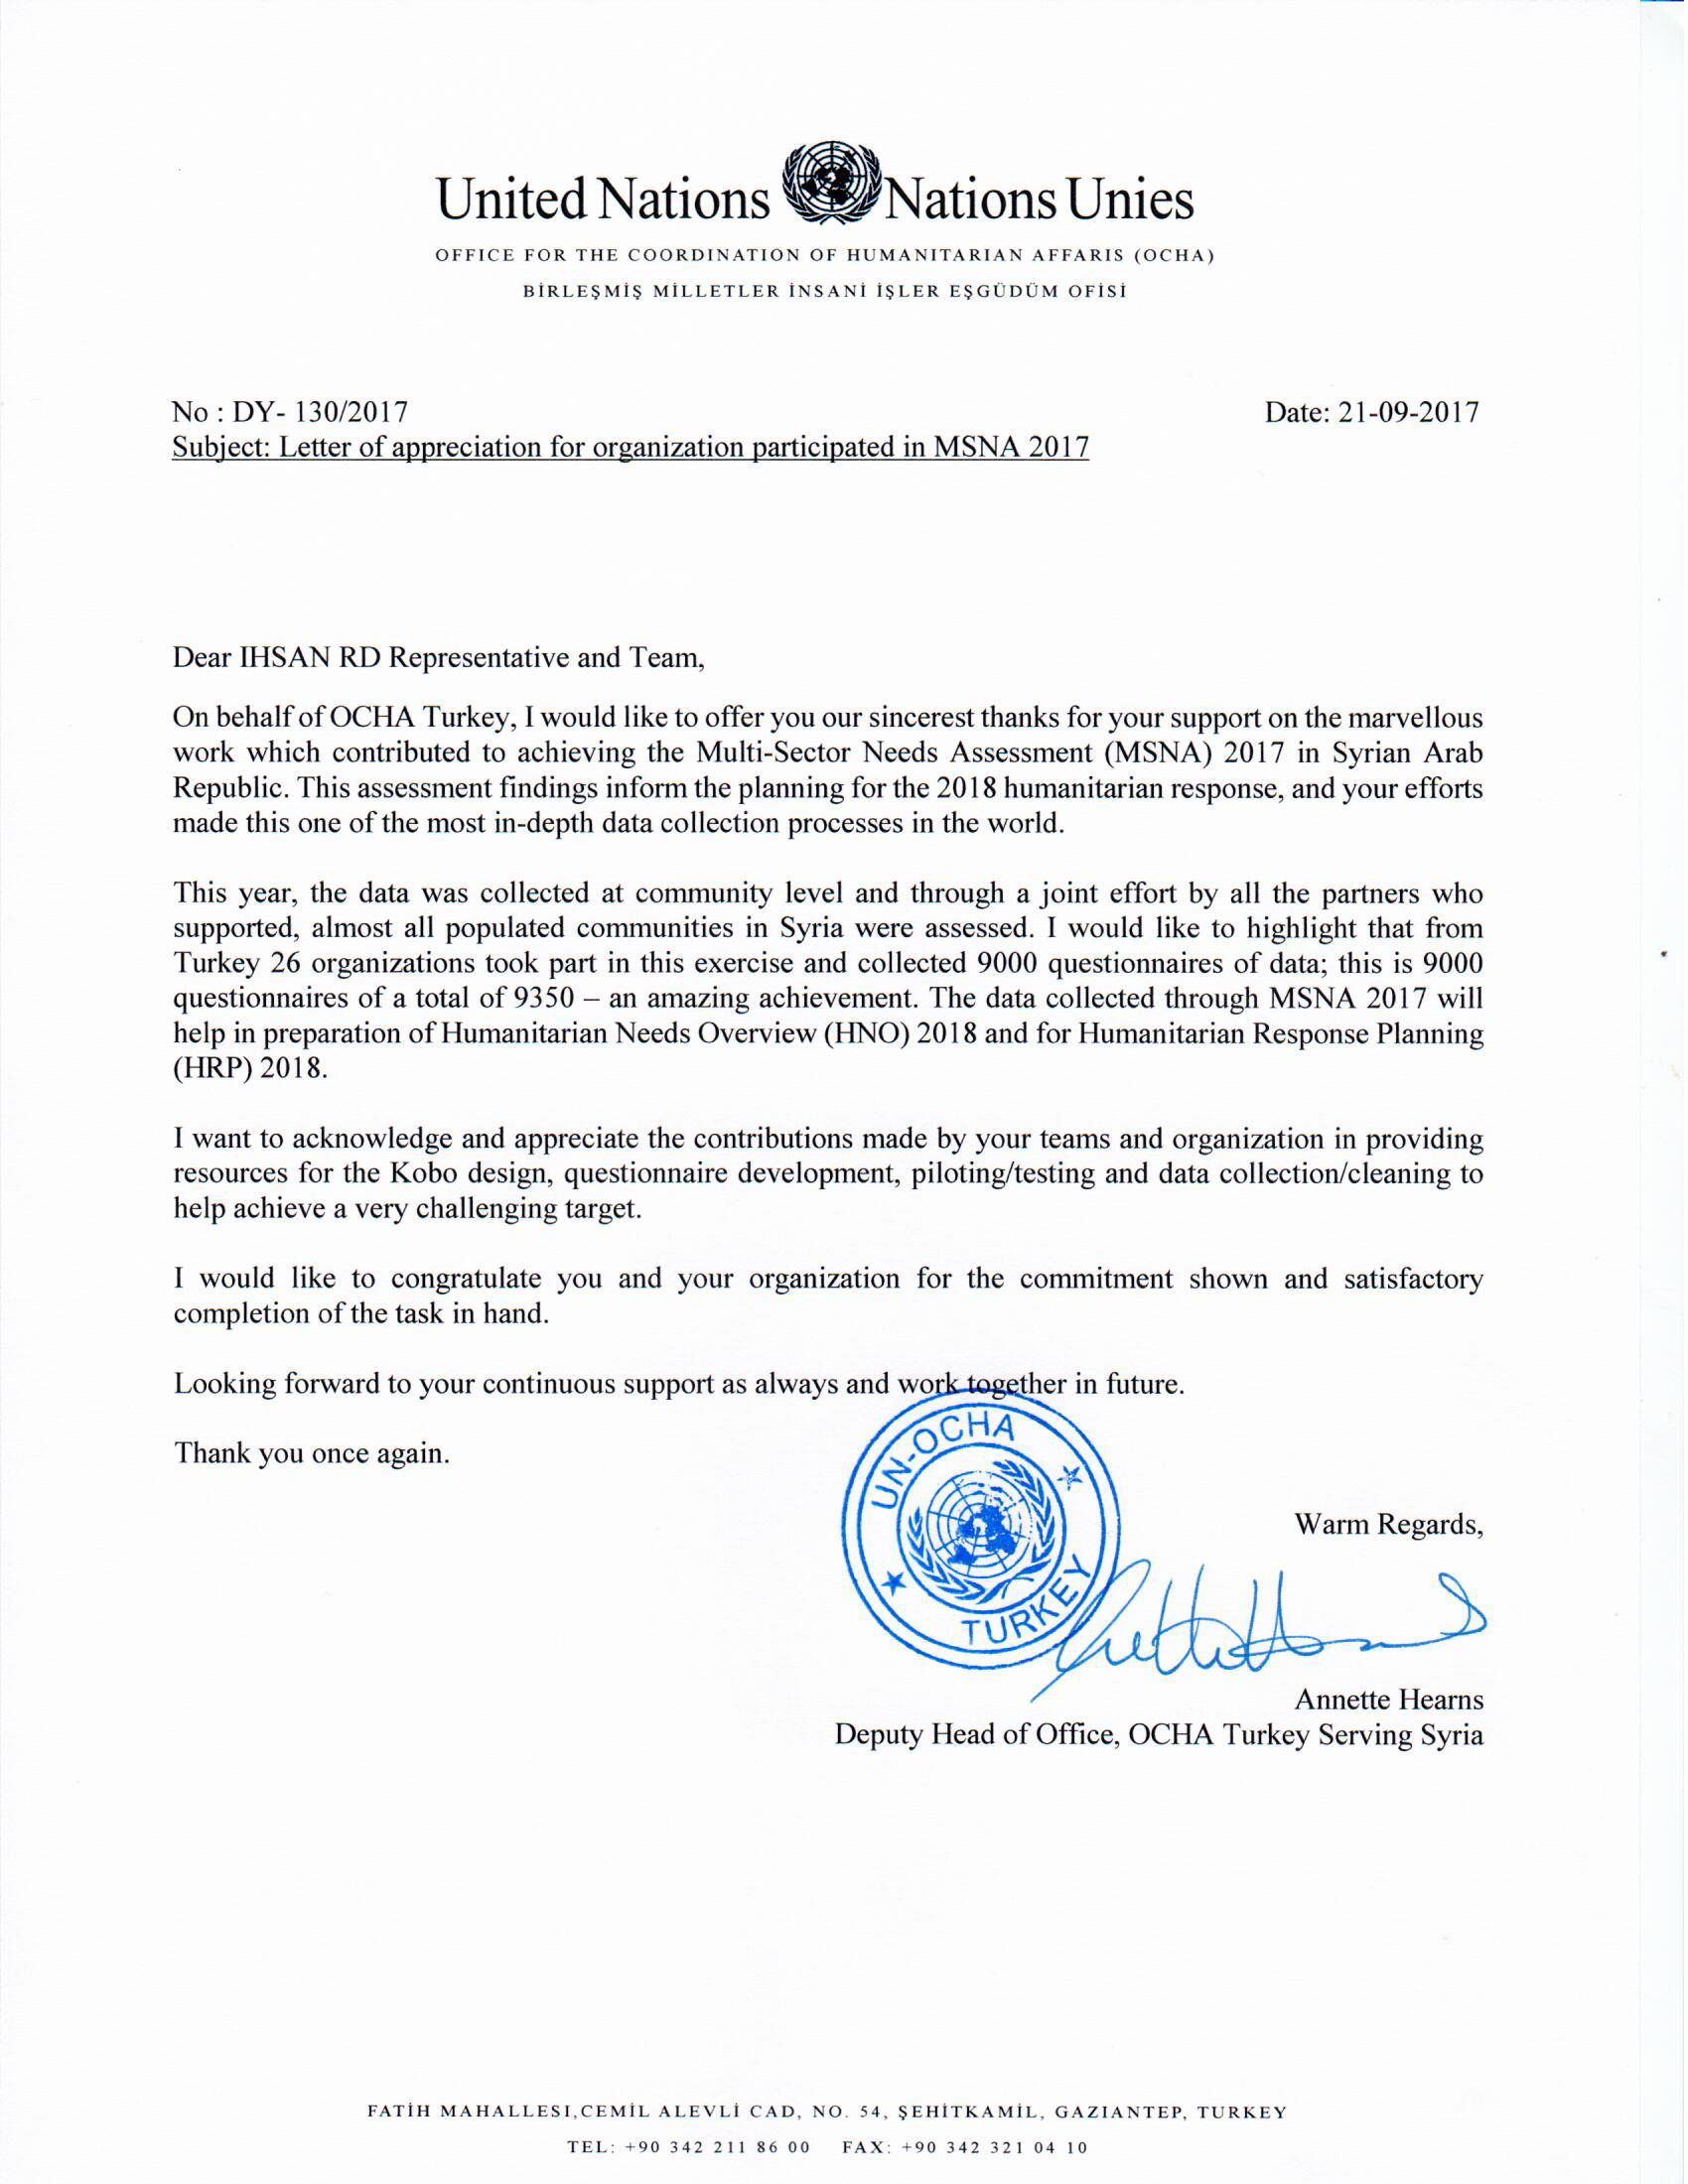 A Letter of Appreciation from OCHA for Ihsan Team